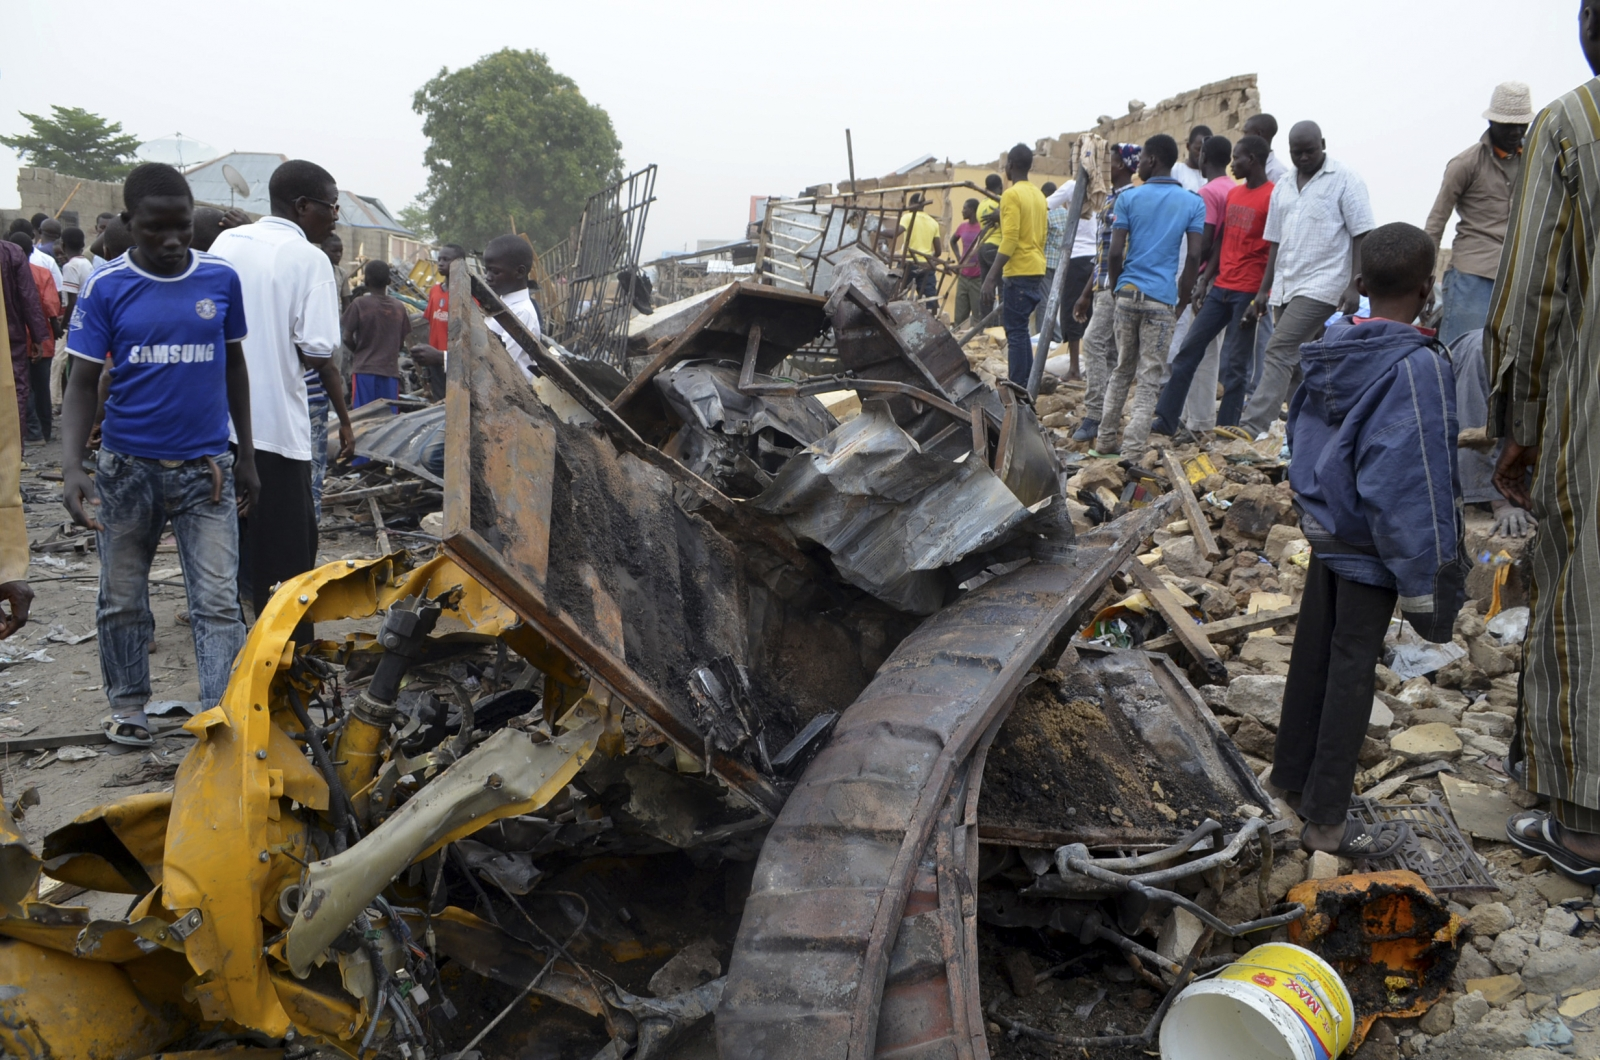 Suicide bomb attacks in Maiduguri.